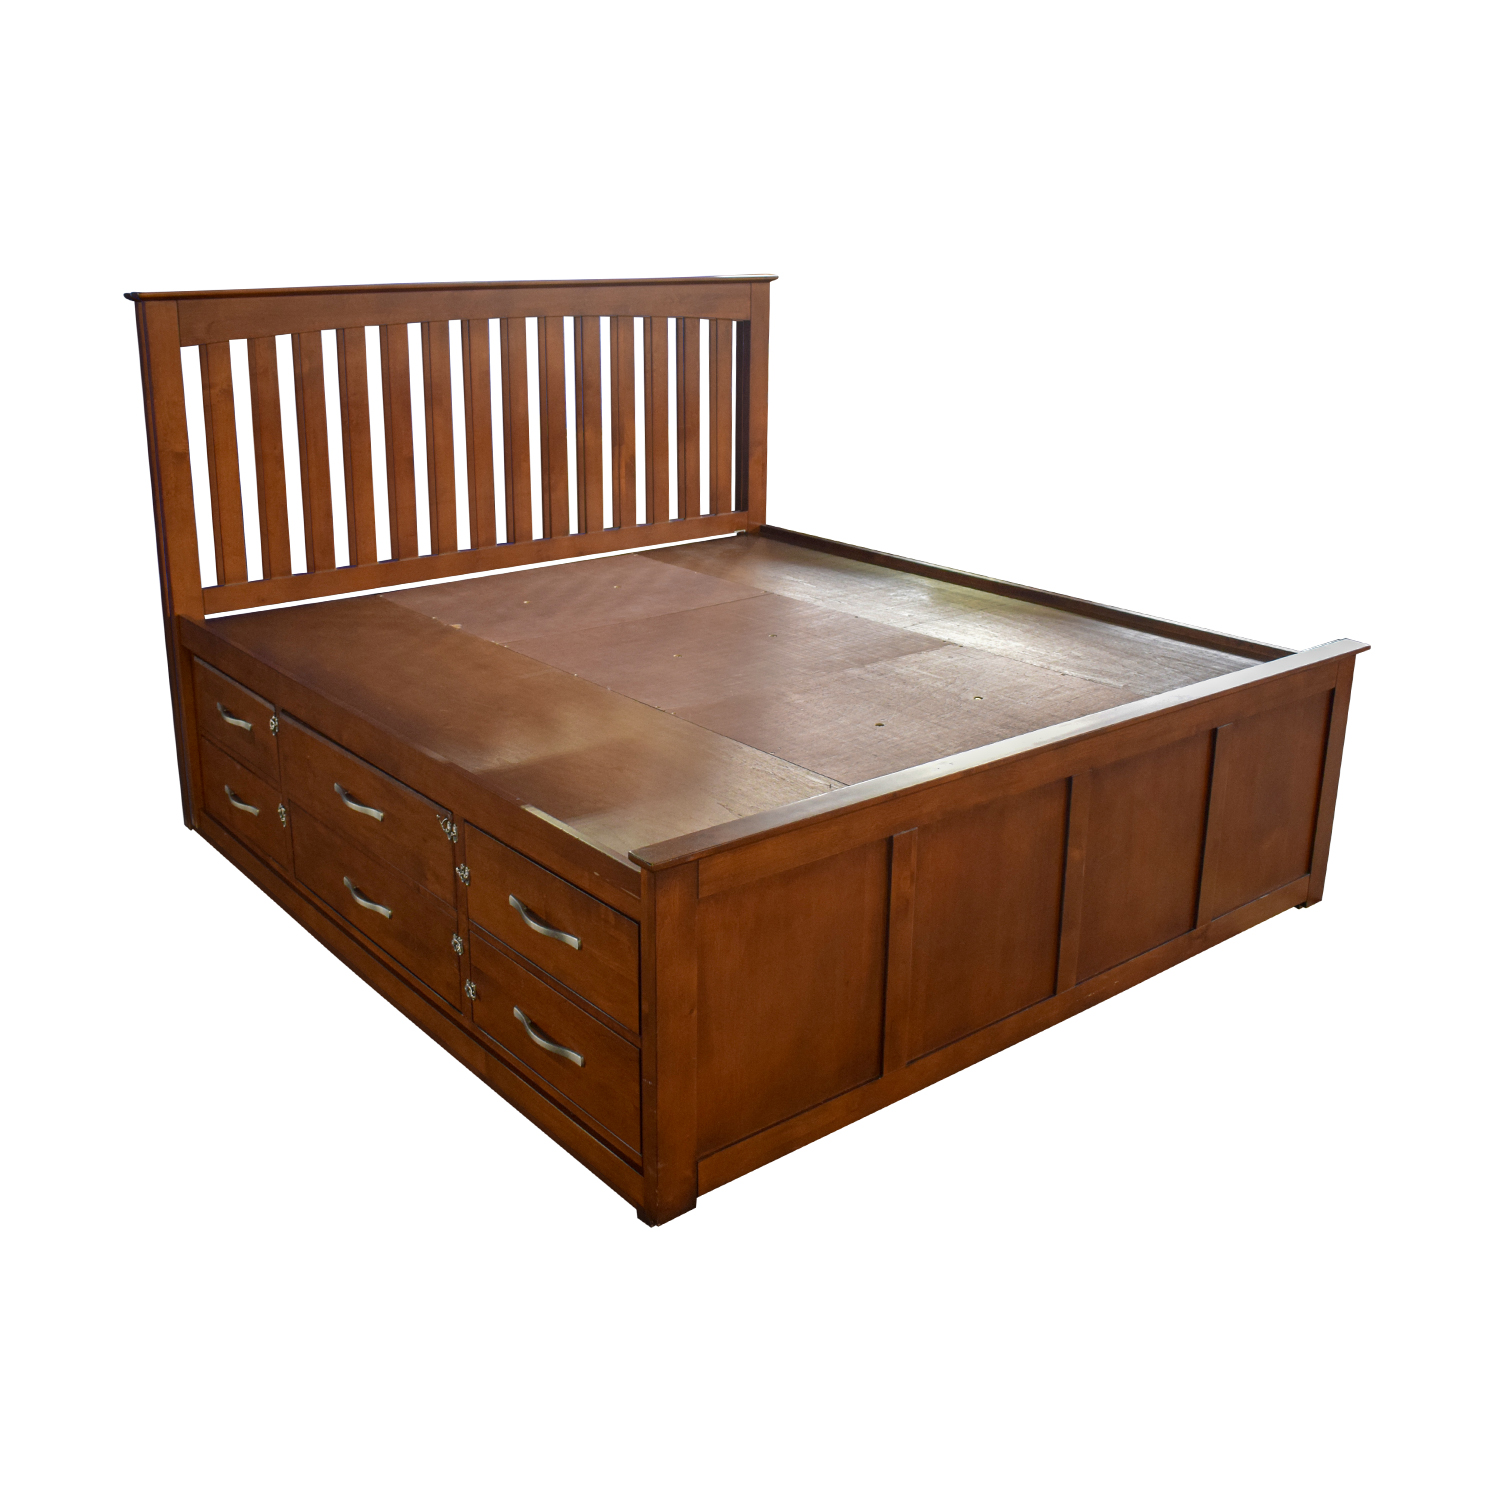 Raymour & Flanigan Raymour & Flanigan King Platform Bed Frame with Storage Drawers brown